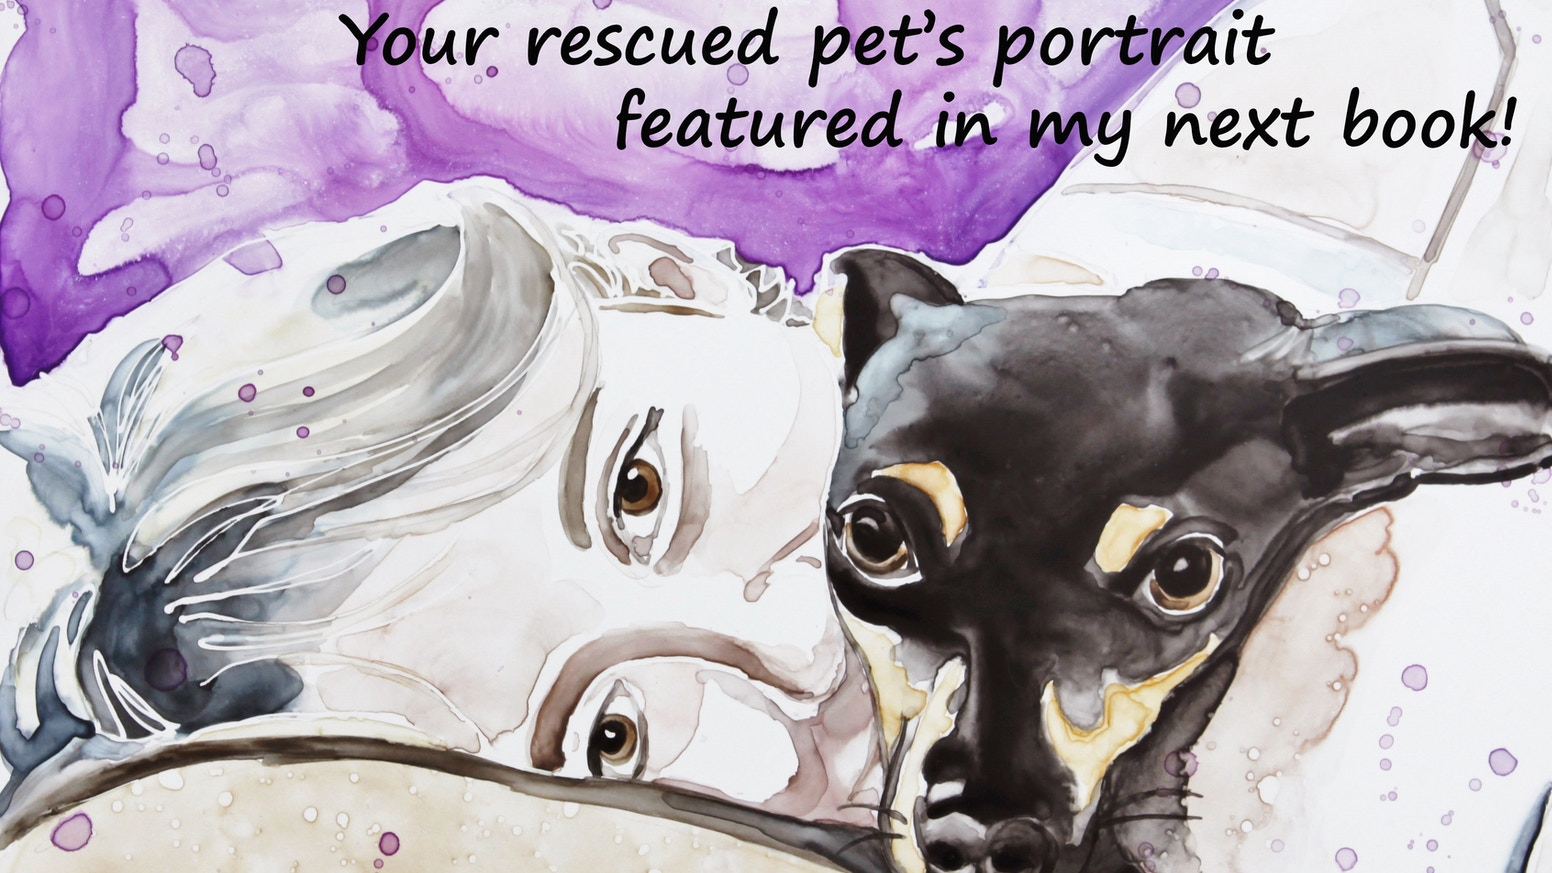 Horses, dogs, cats, and even turtles!  A custom watercolor painting of your rescued pet featured in my next book!